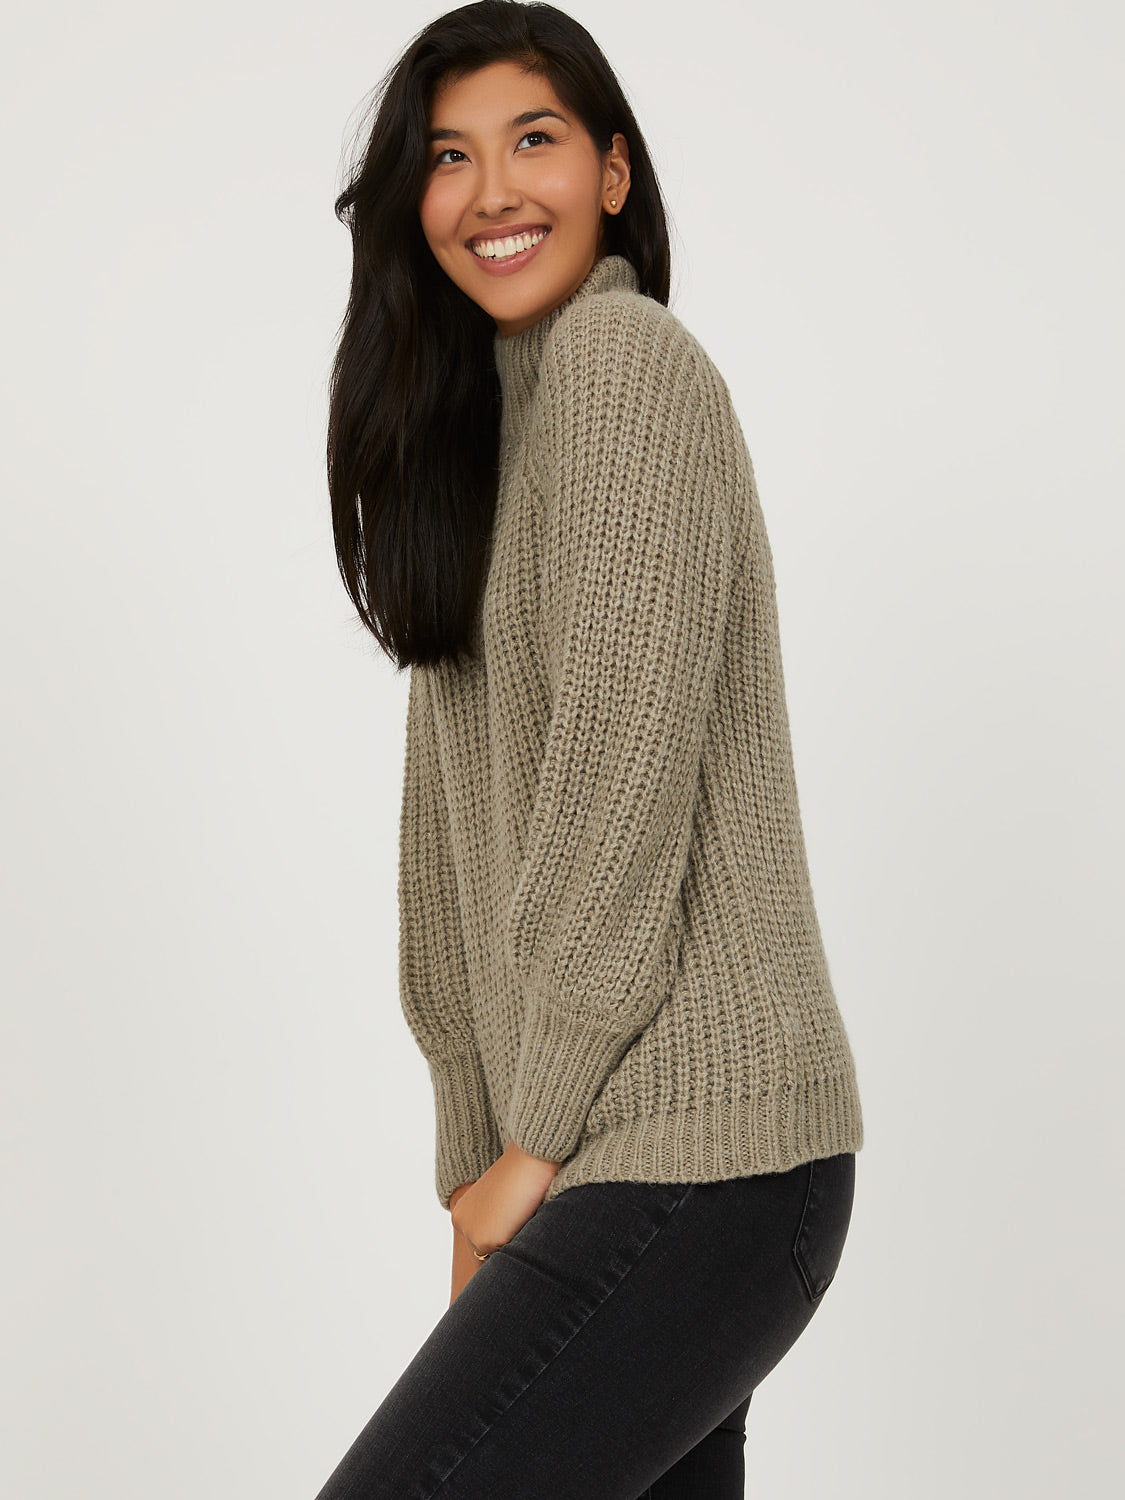 Balloon Sleeve Mock Neck Sweater